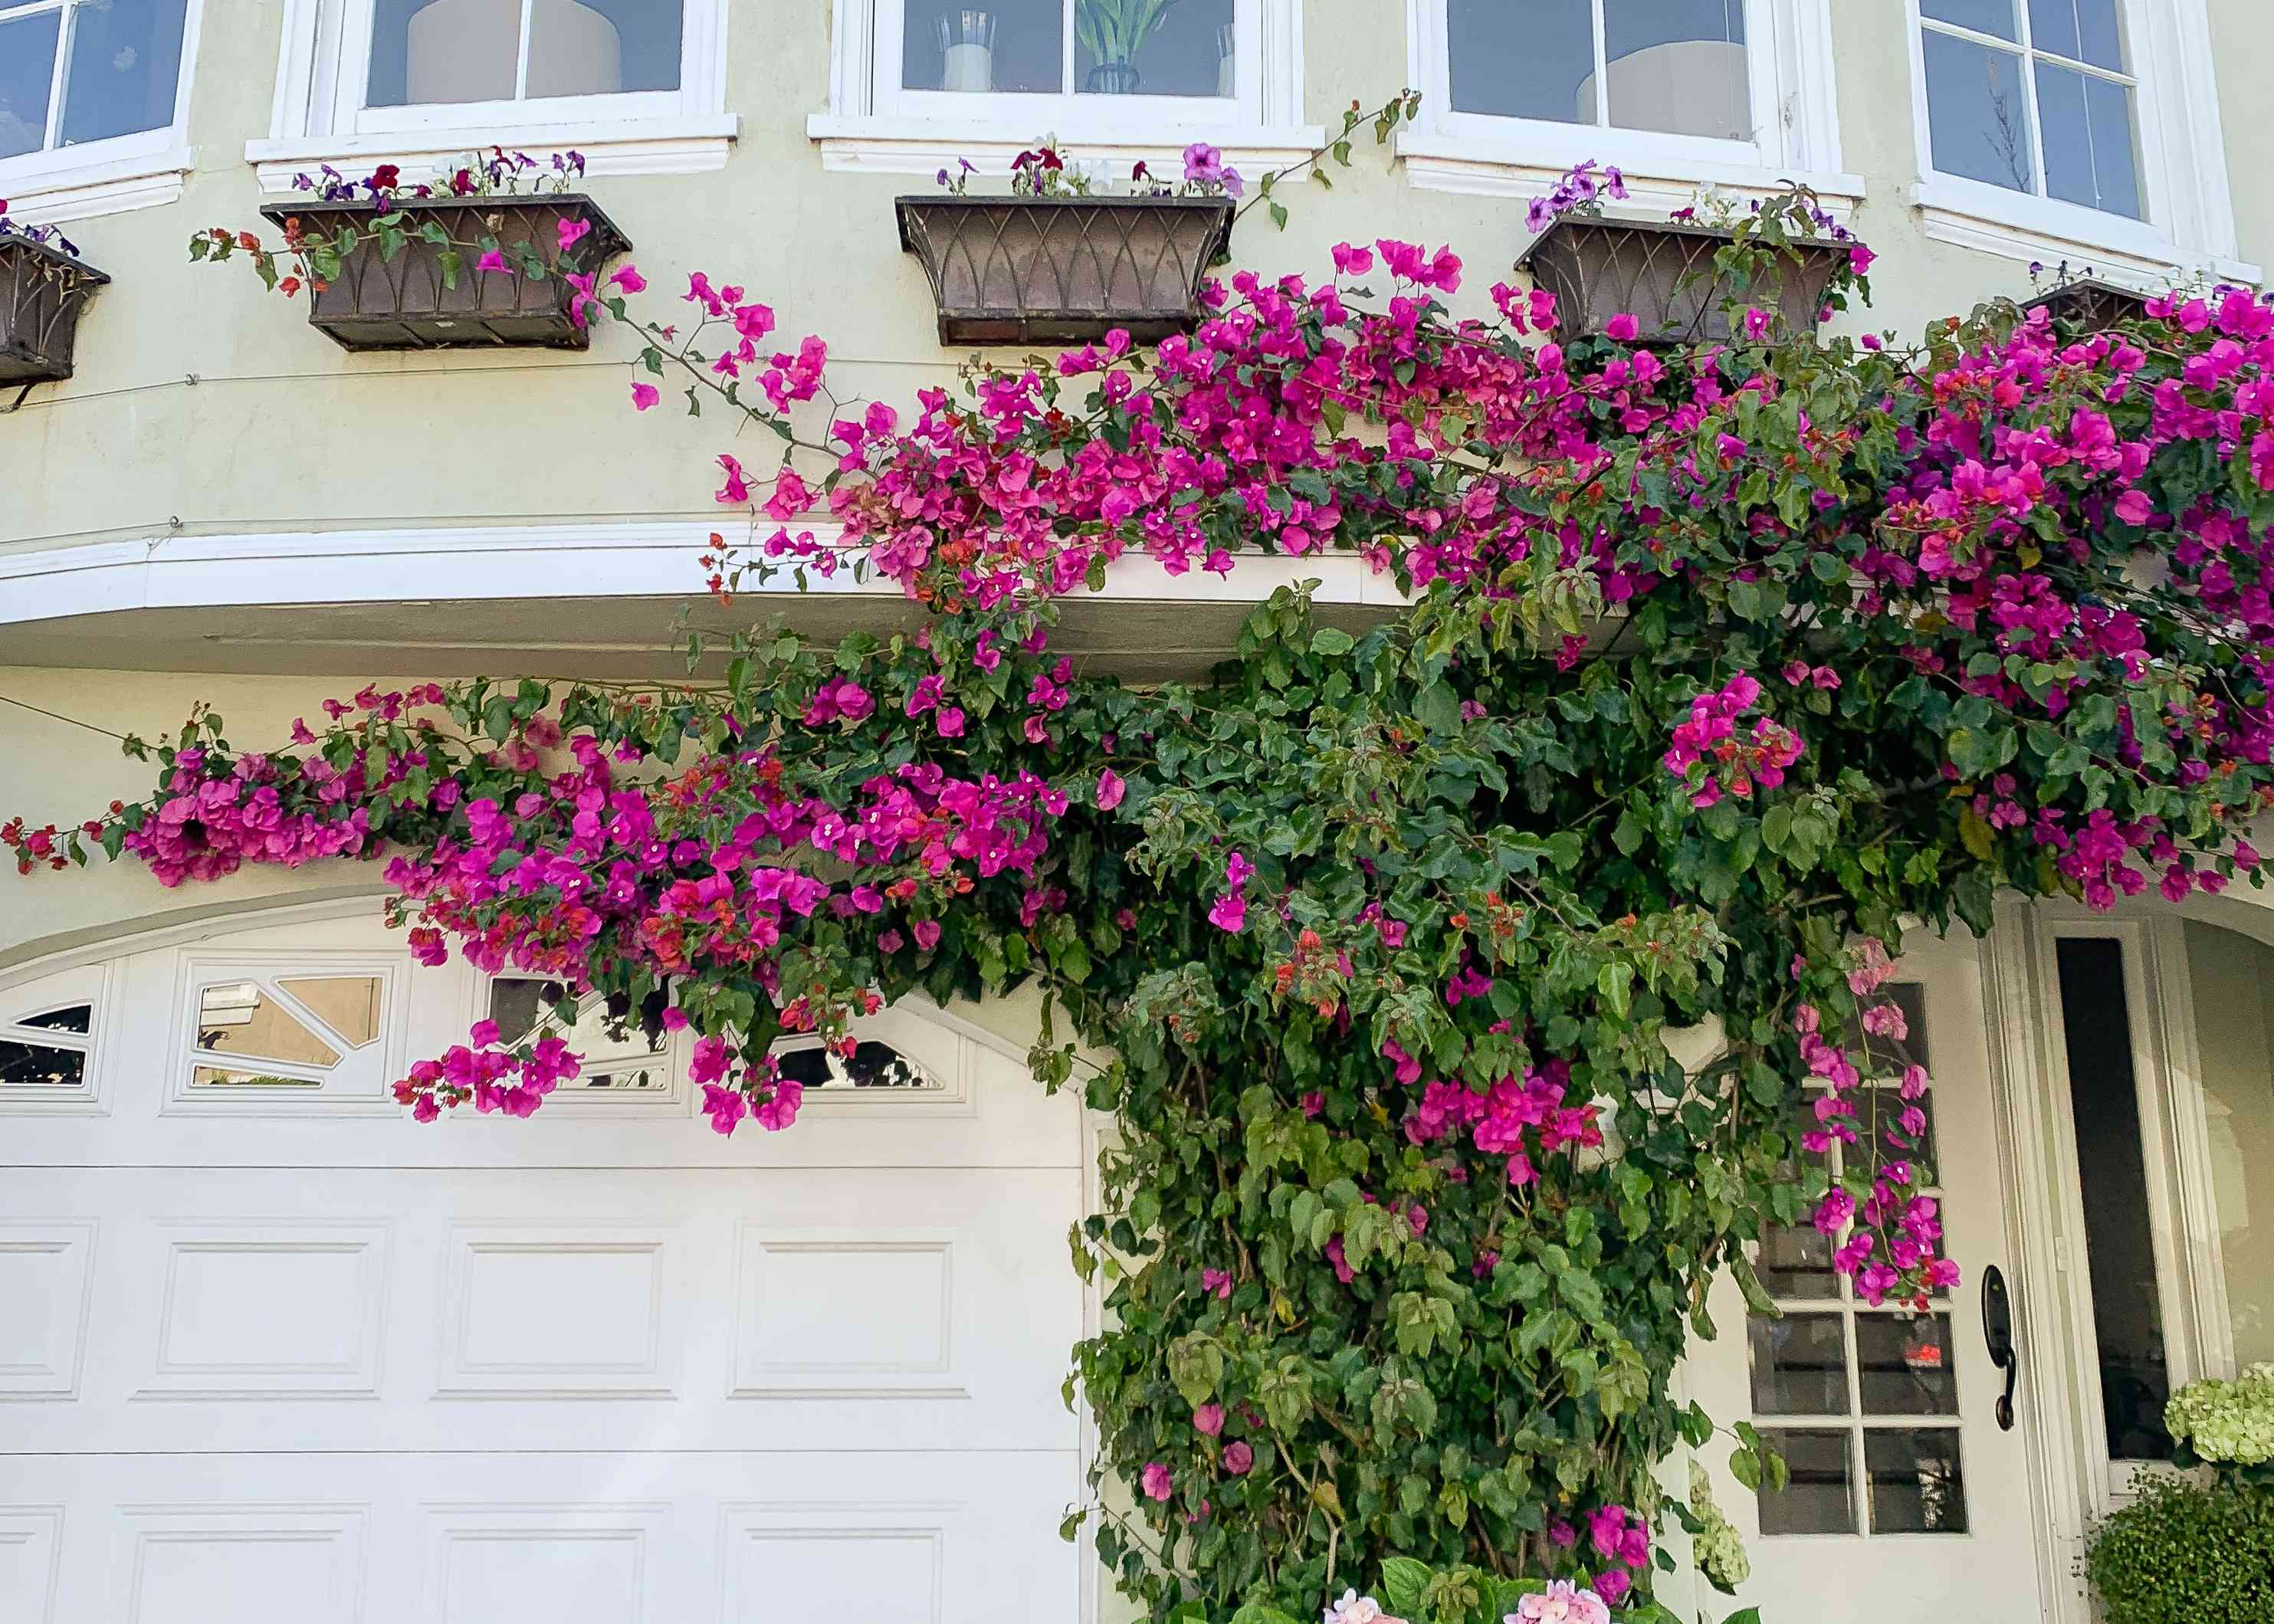 bougainvillea on the exterior of a house